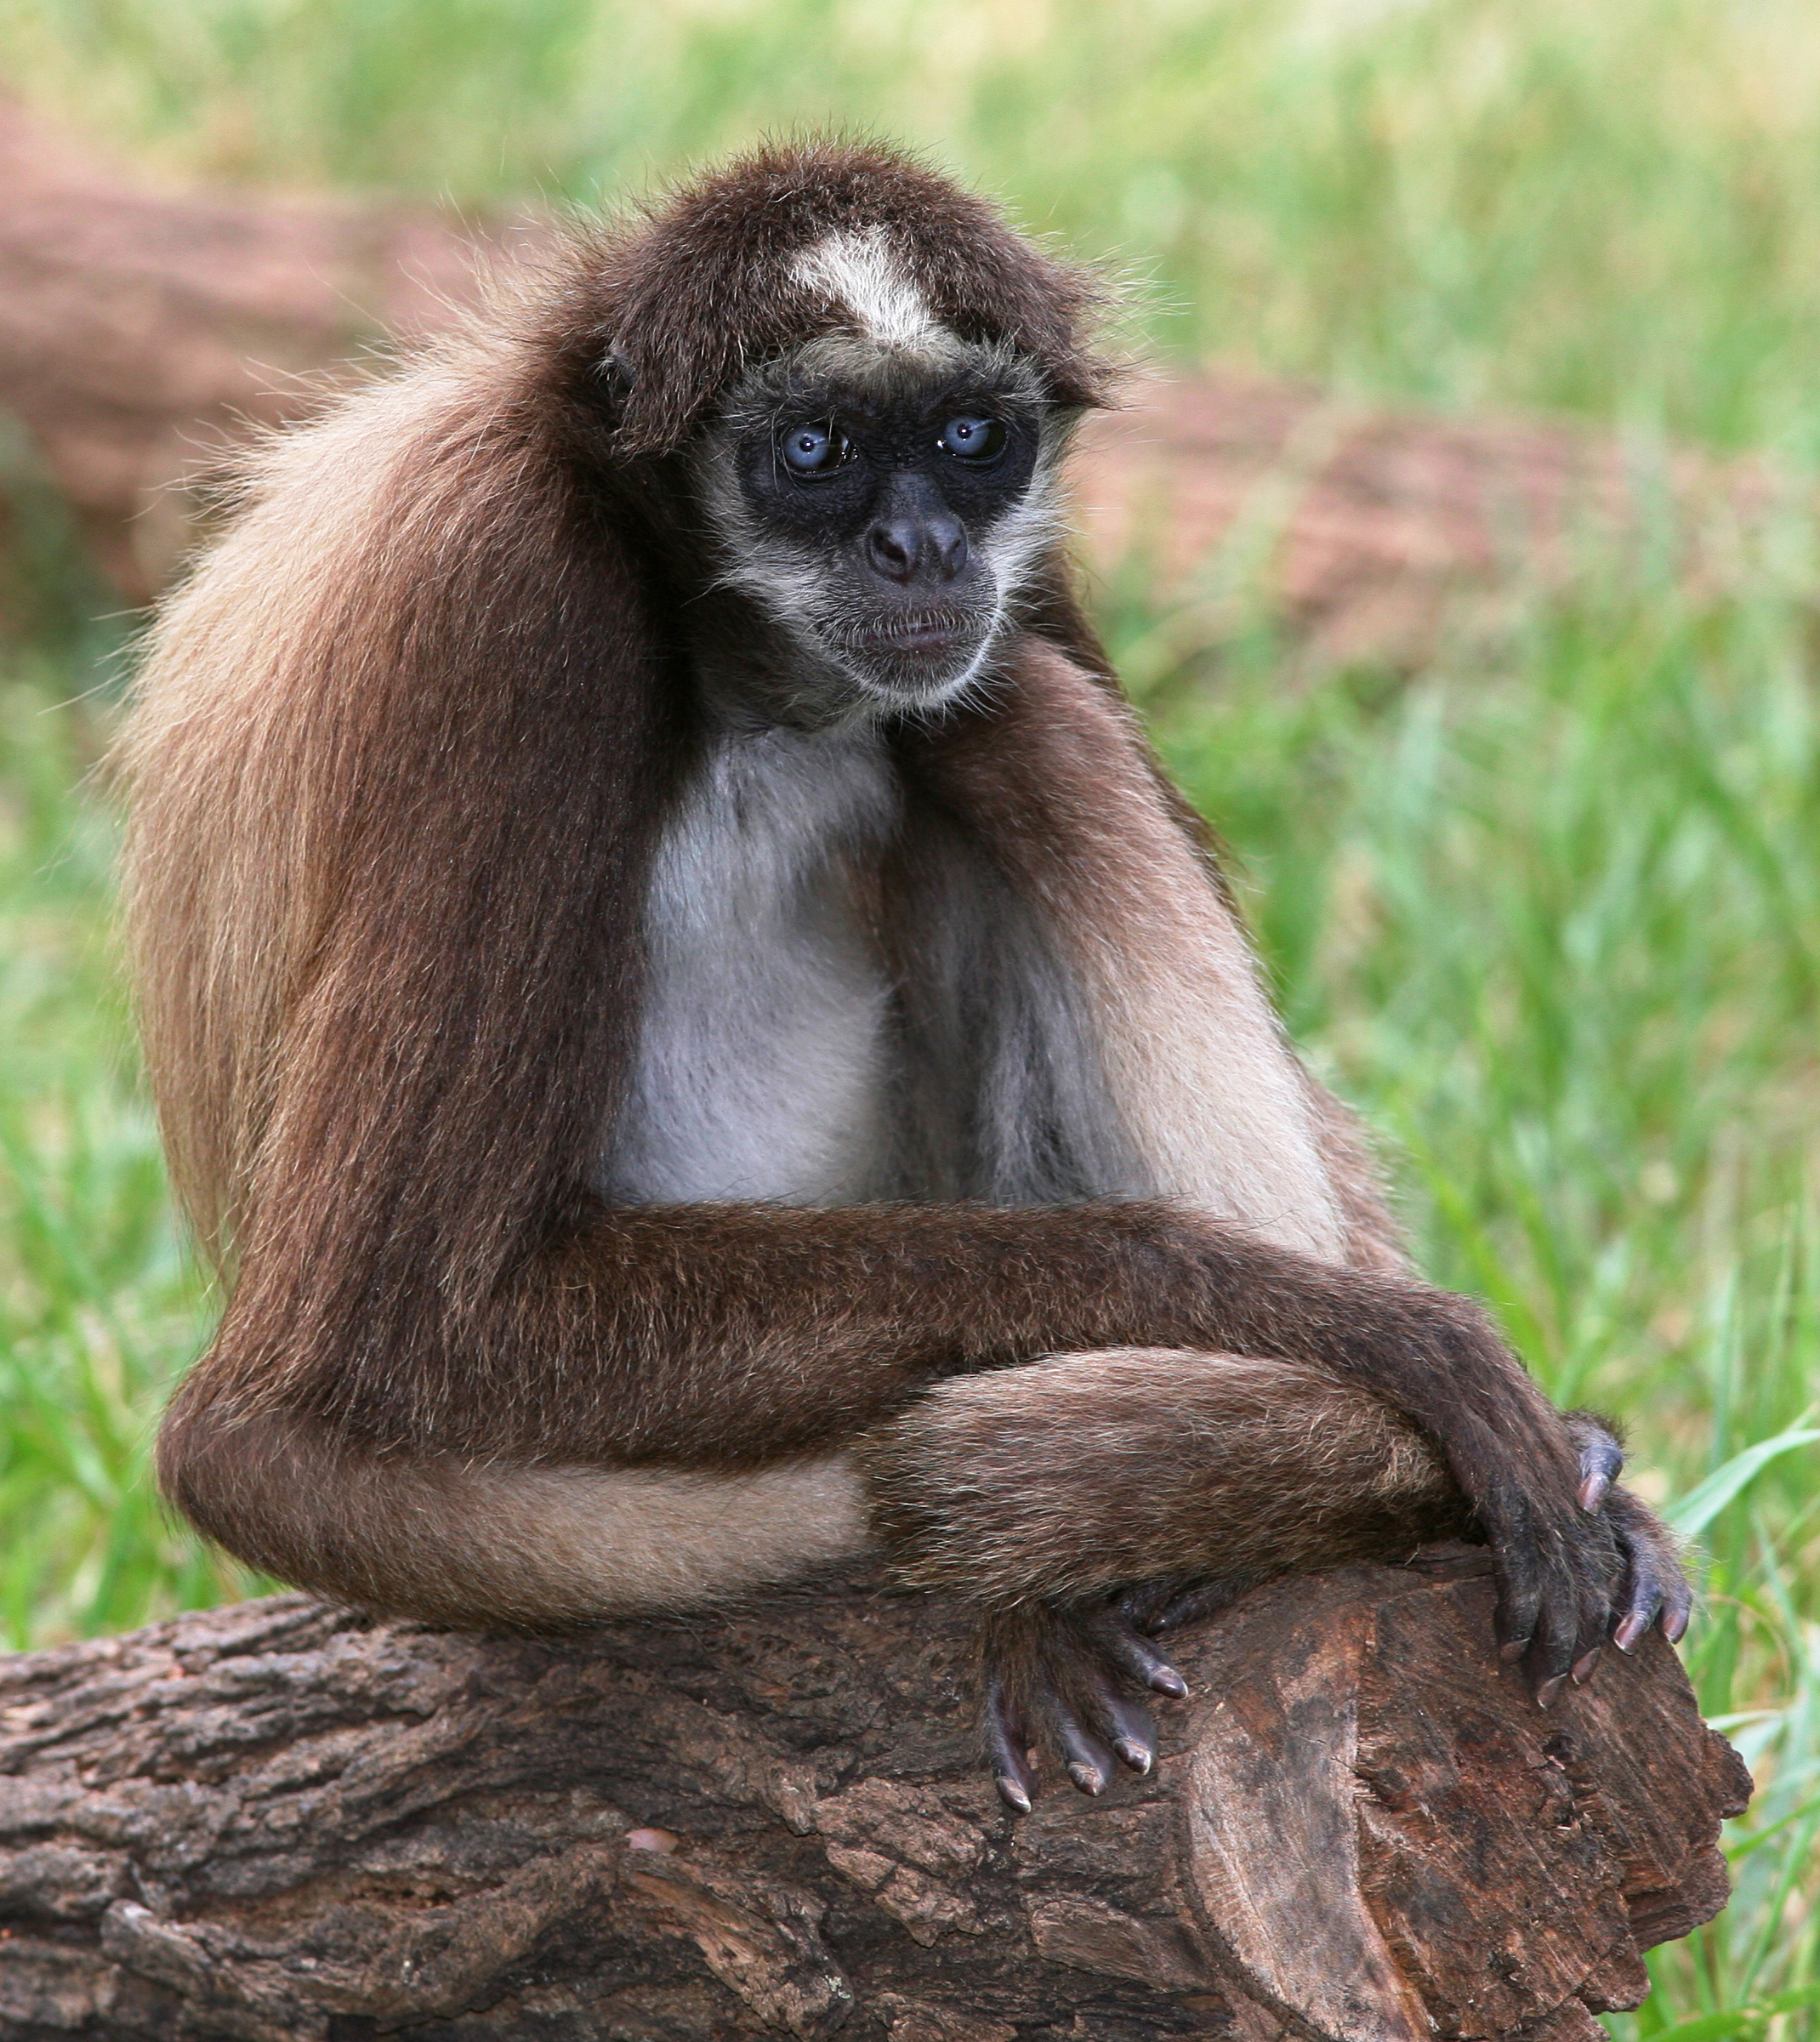 Brown spider monkey - Wikipedia